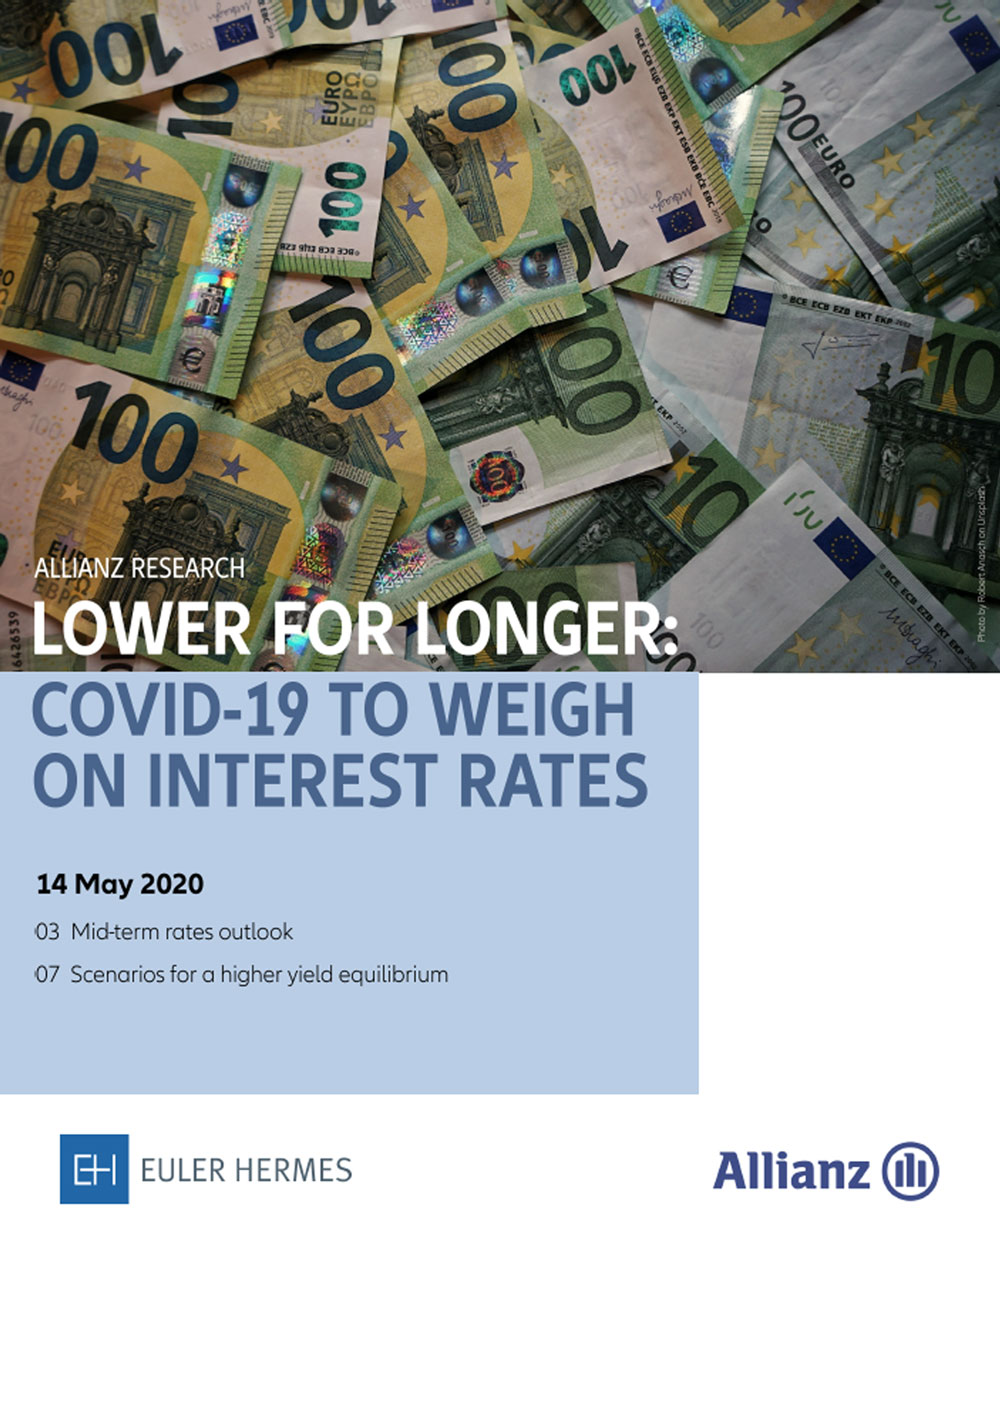 Lower for longer: Covid-19 to weigh on interest rates